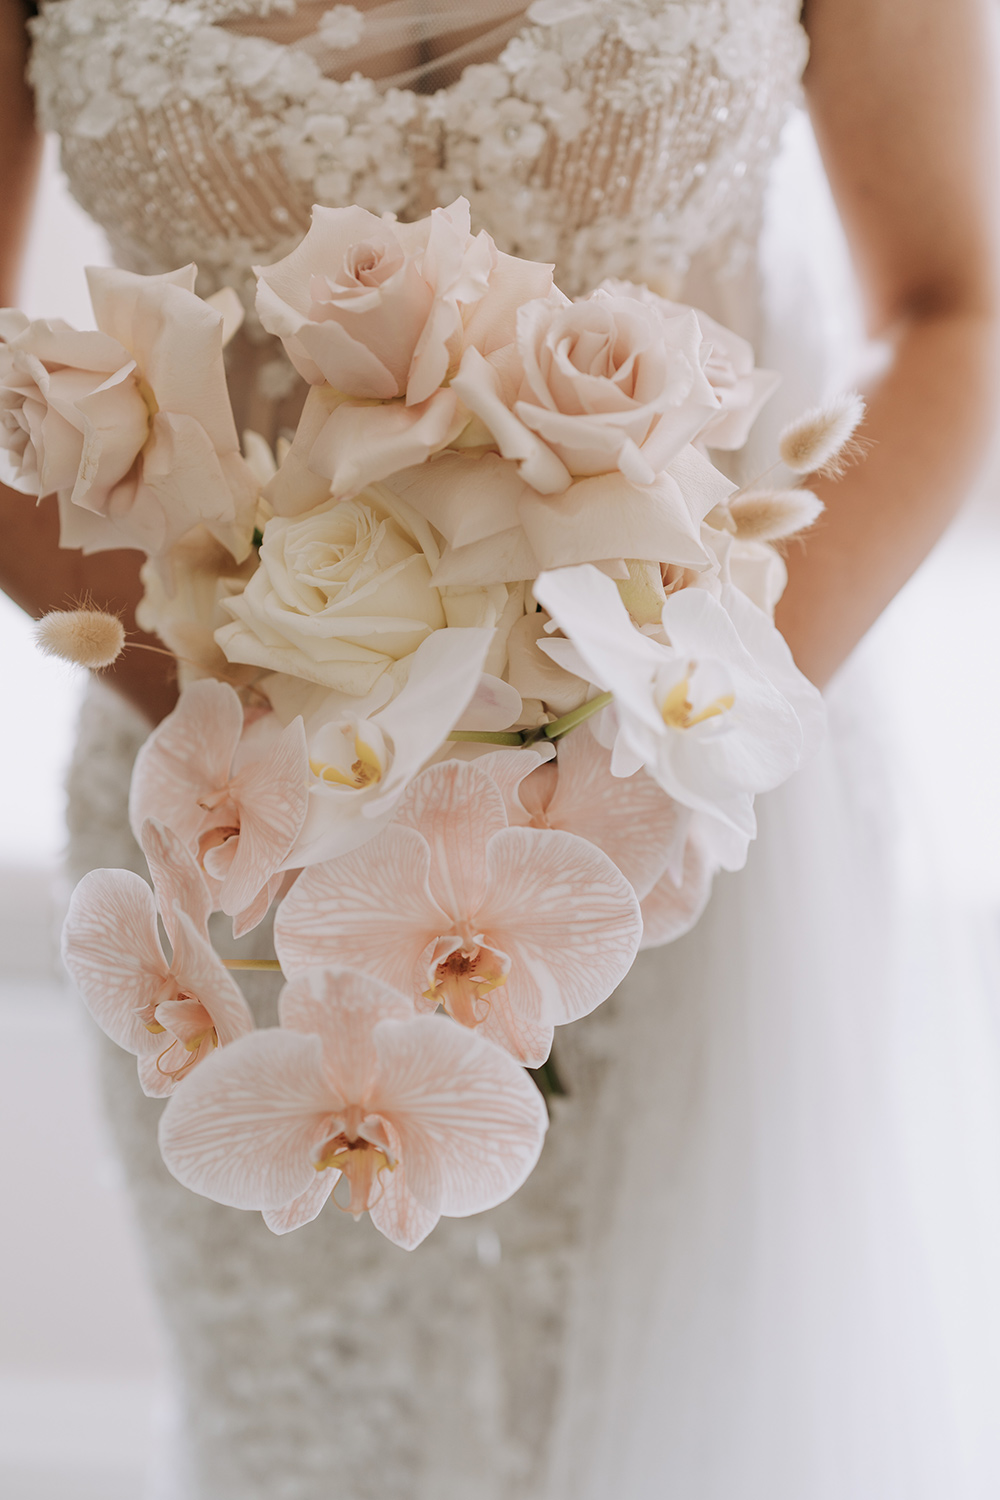 Modern wedding bouquet featuring orchids and roses